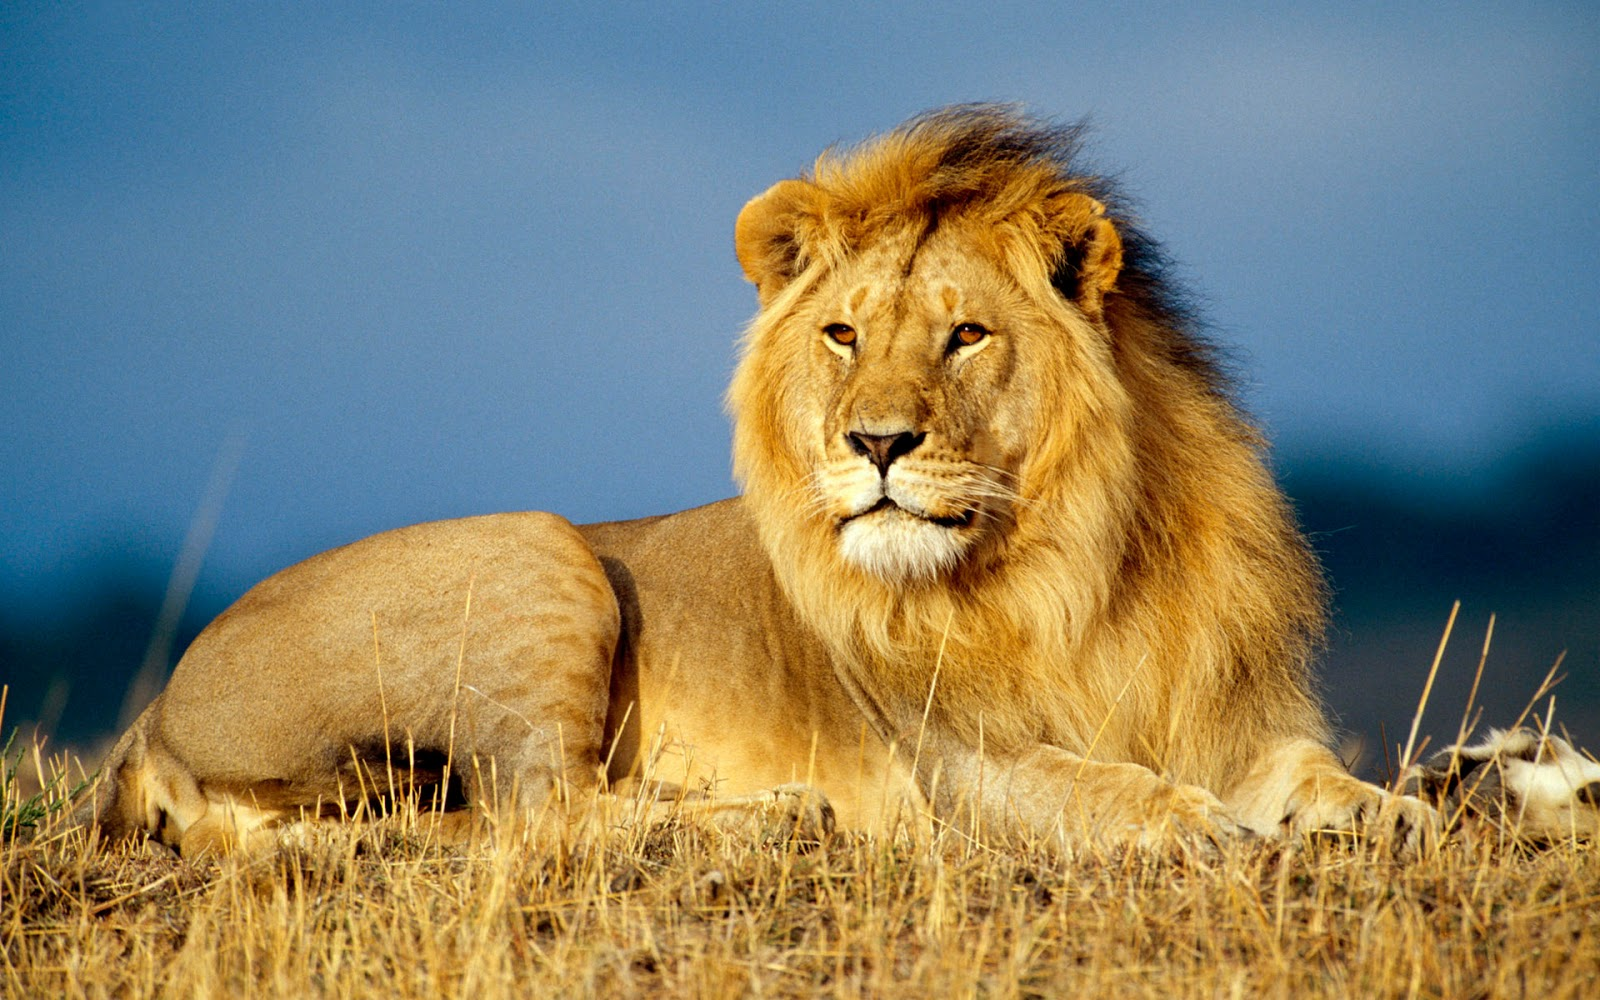 lion wallpaper lion wallpapers lions wallpaper lions wallpapers 1600x1000